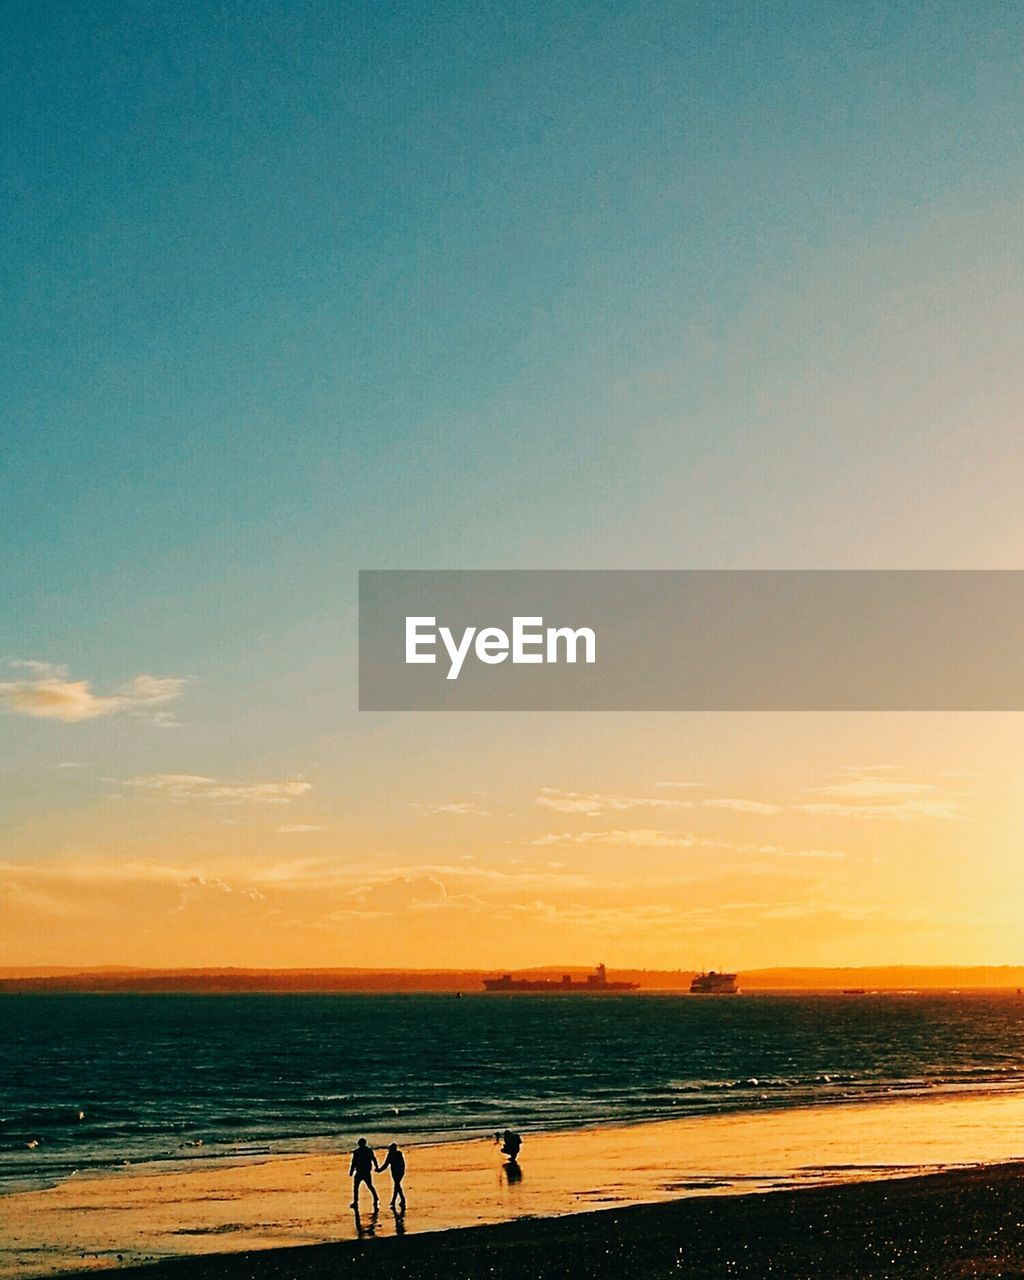 sky, water, sunset, land, beauty in nature, sea, beach, real people, bicycle, horizon, nature, scenics - nature, horizon over water, orange color, transportation, animal themes, riding, ride, tranquil scene, outdoors